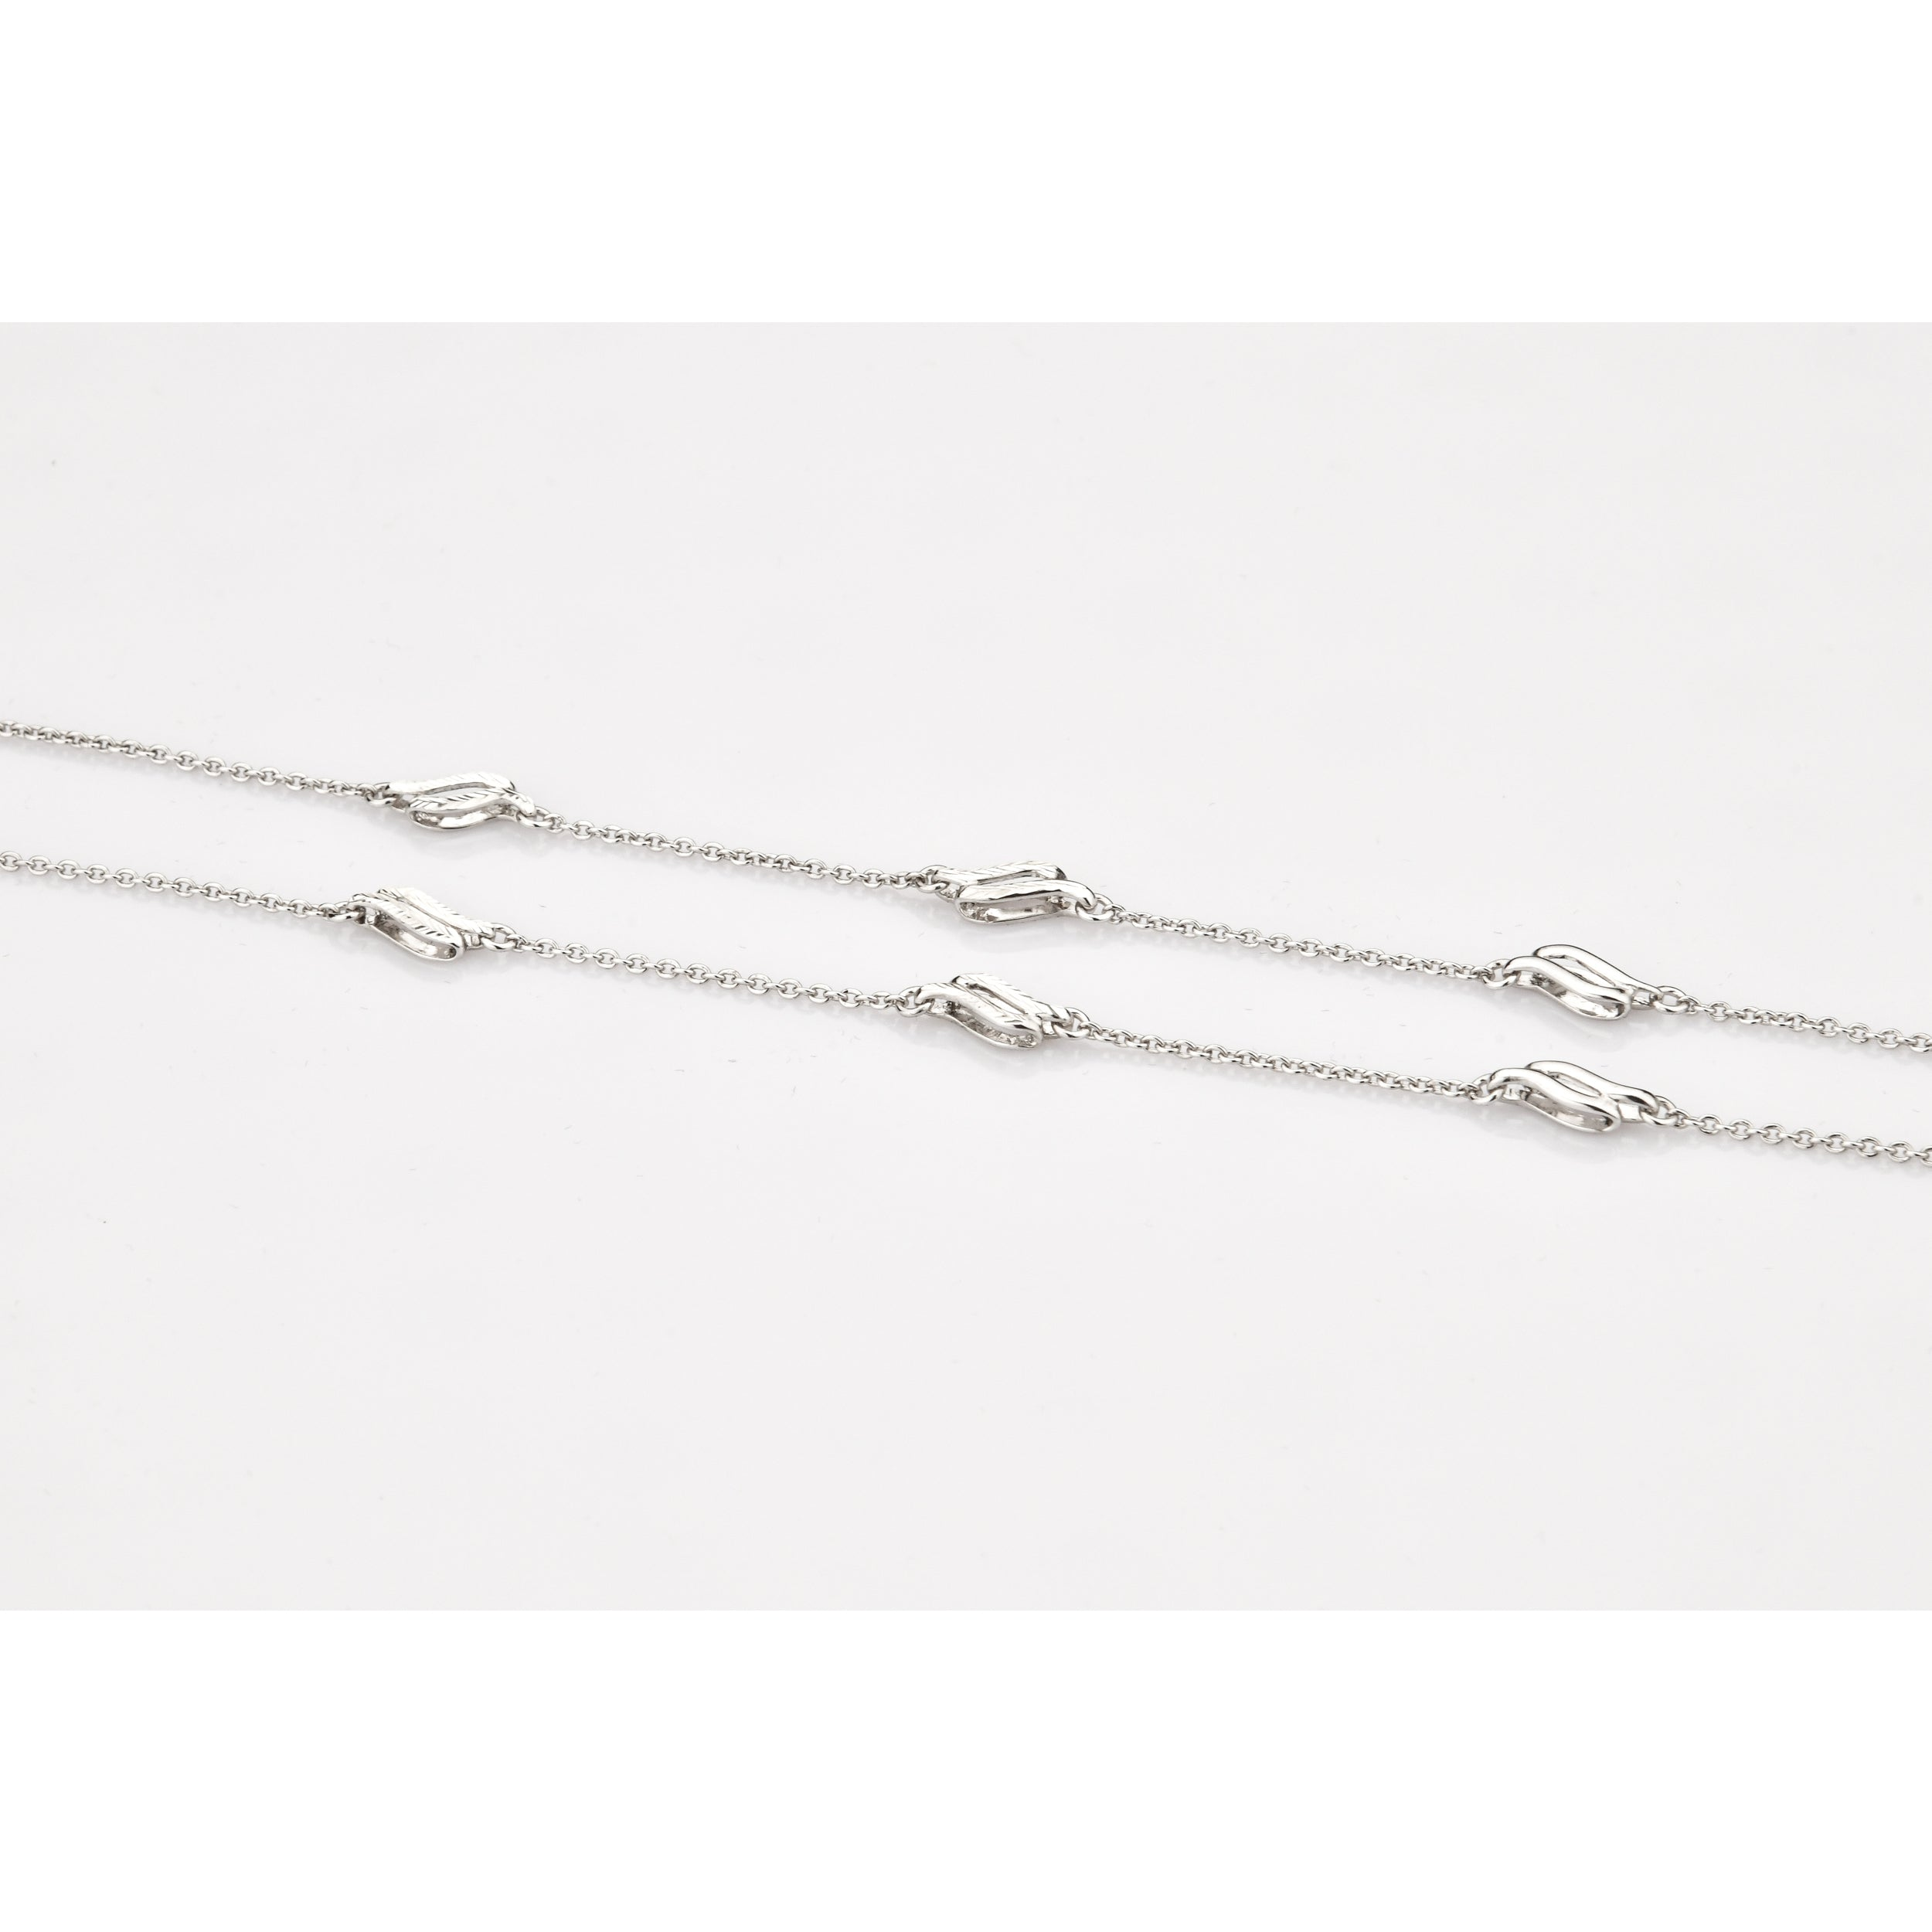 Designer Platinum Chain with Loops JL PT CH 803